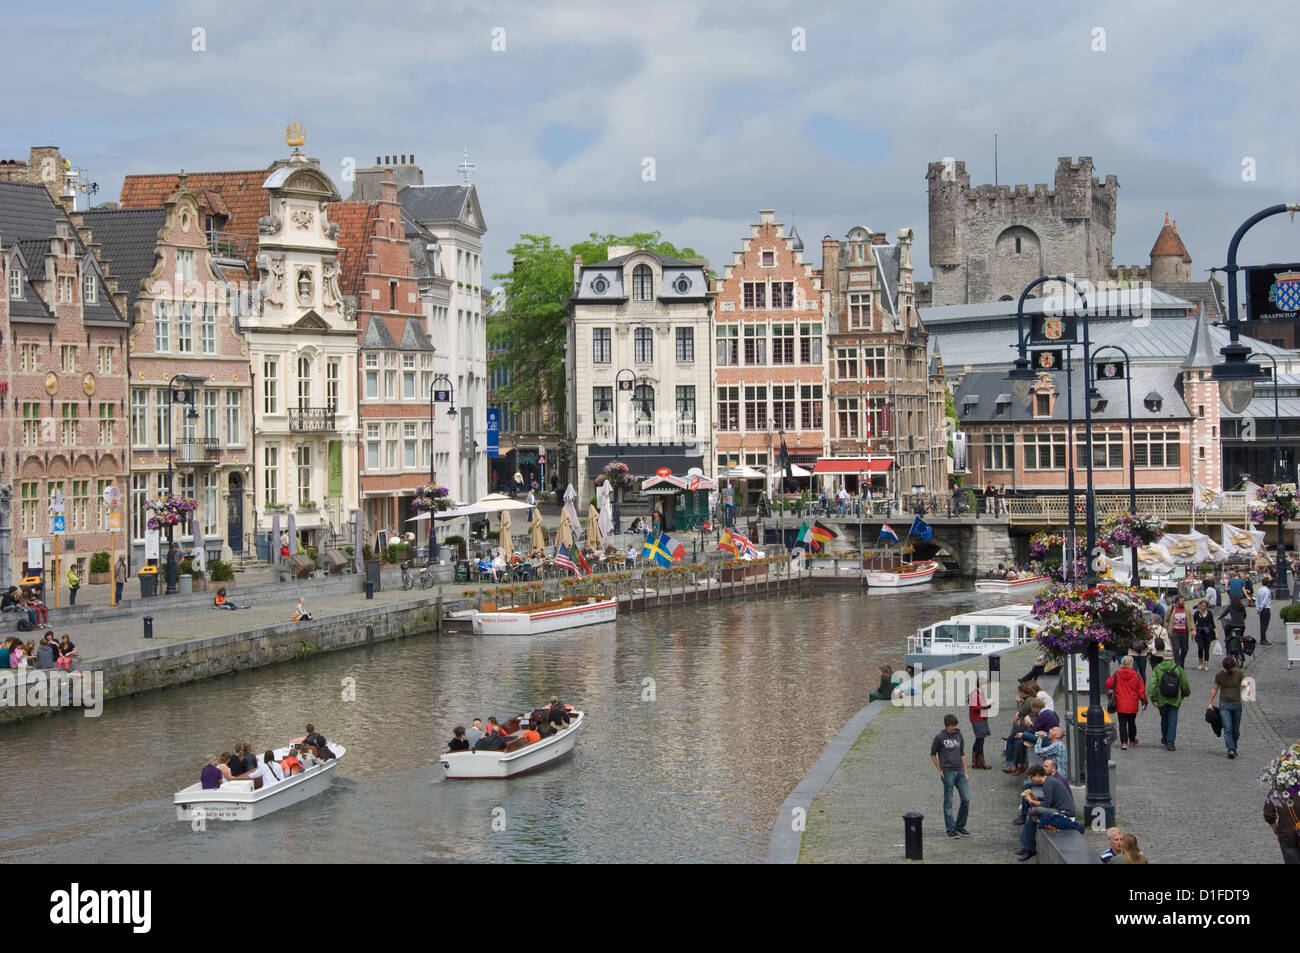 Scene along the Graslei bank, lined with Flemish gabled houses, Gravensteen Castle beyond, in the centre of Ghent, - Stock Image